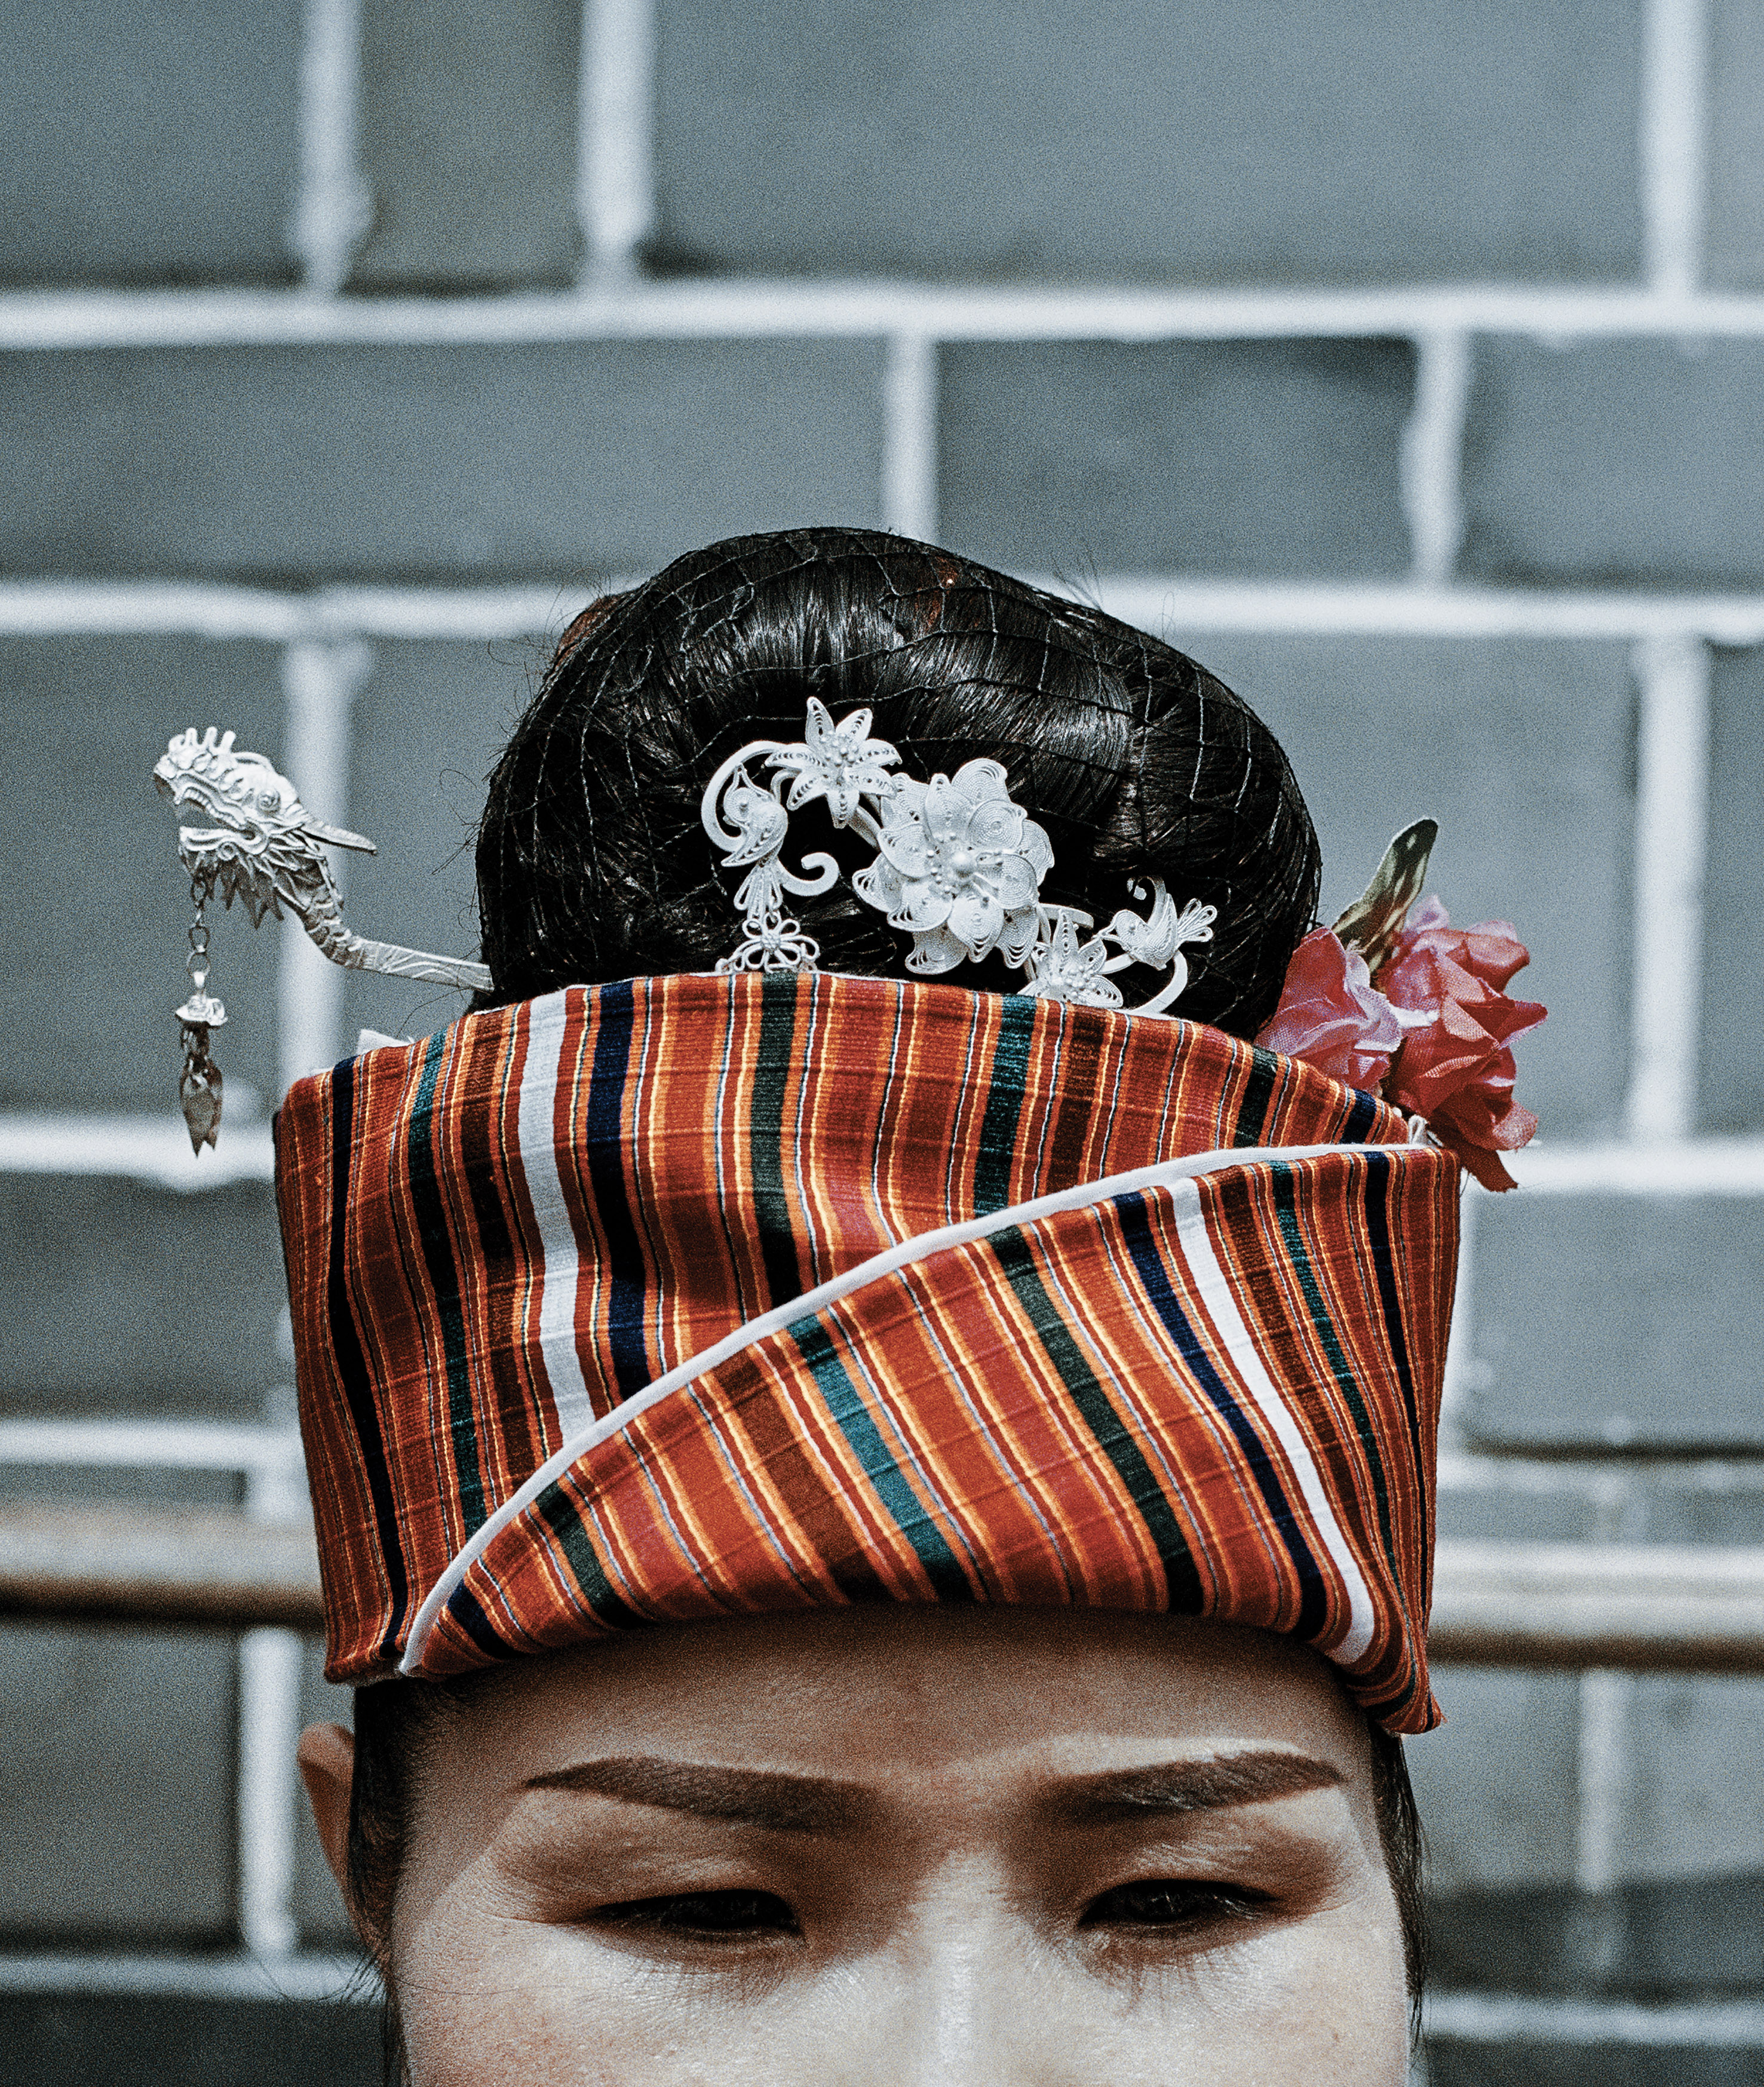 Teaser for the upcoming Marni Miao project